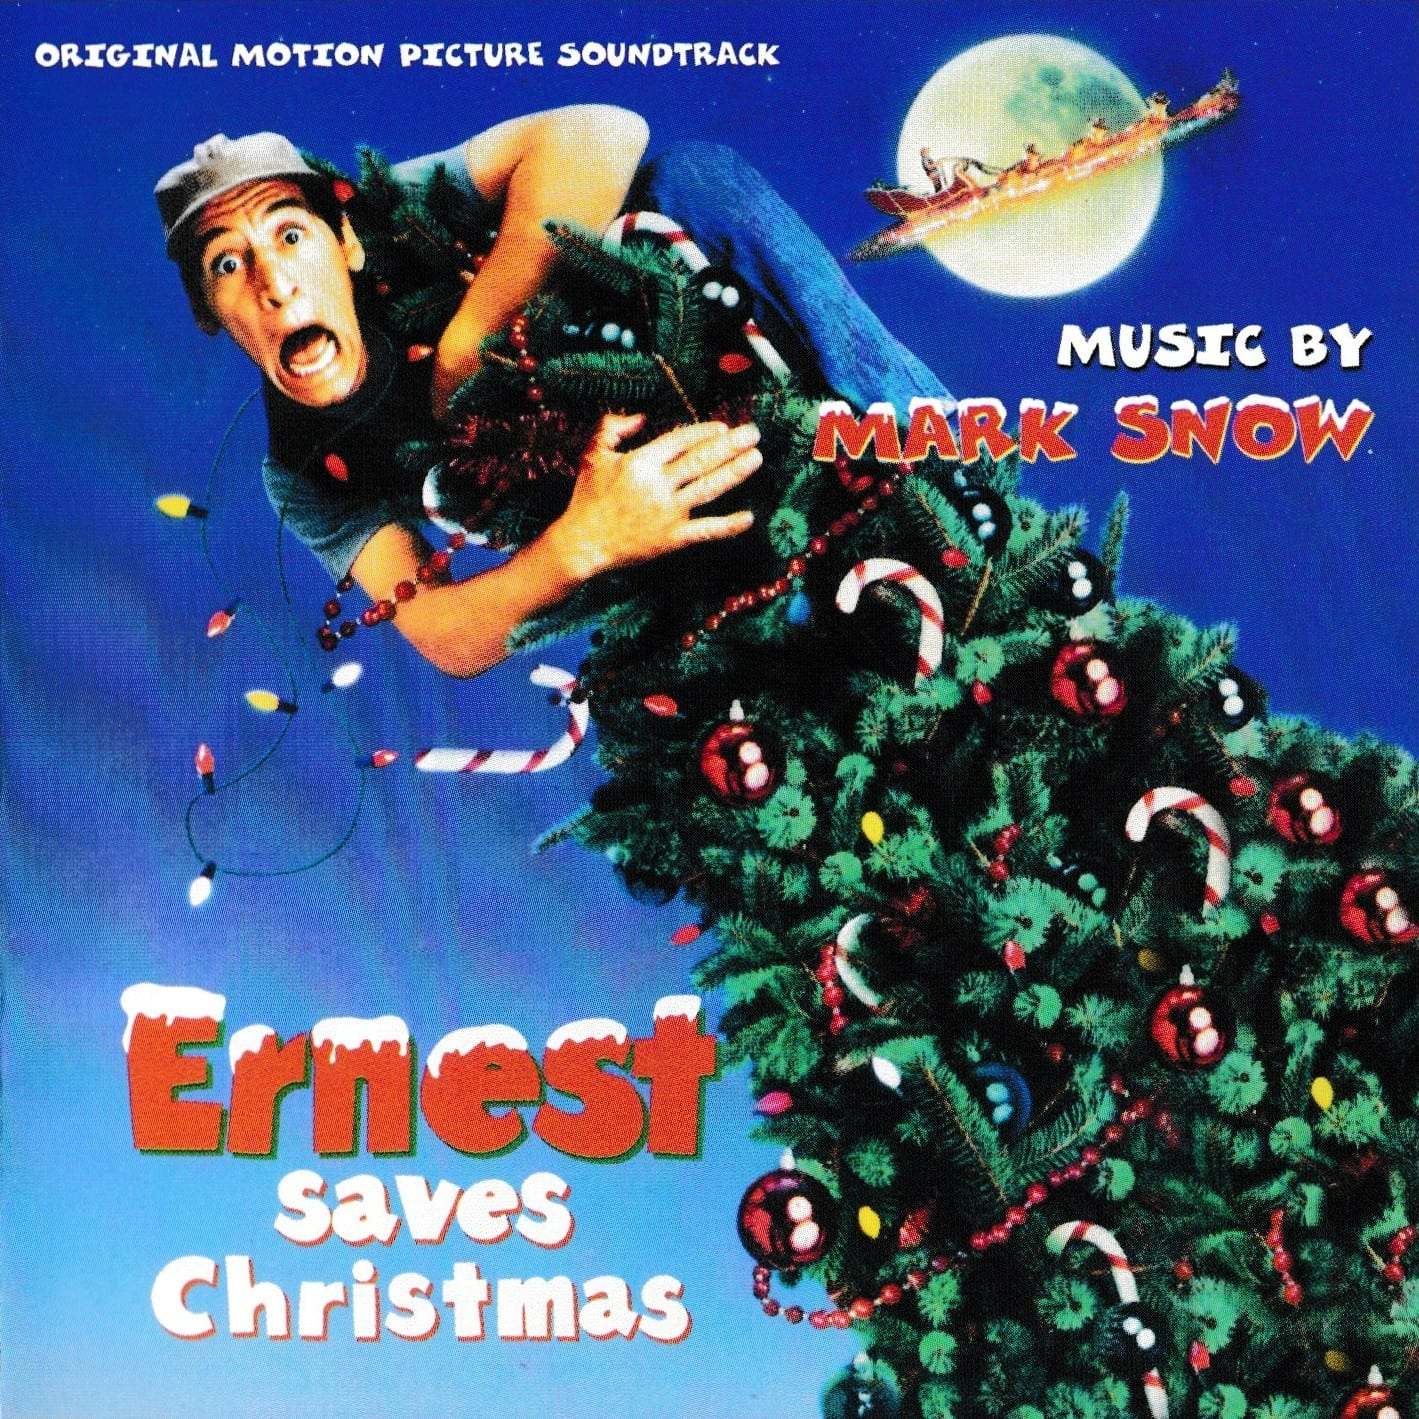 Dr. Seuss' How The Grinch Stole Christmas - Complete Original Motion Picture Score (EXPANDED EDITION) (2007) CD 8